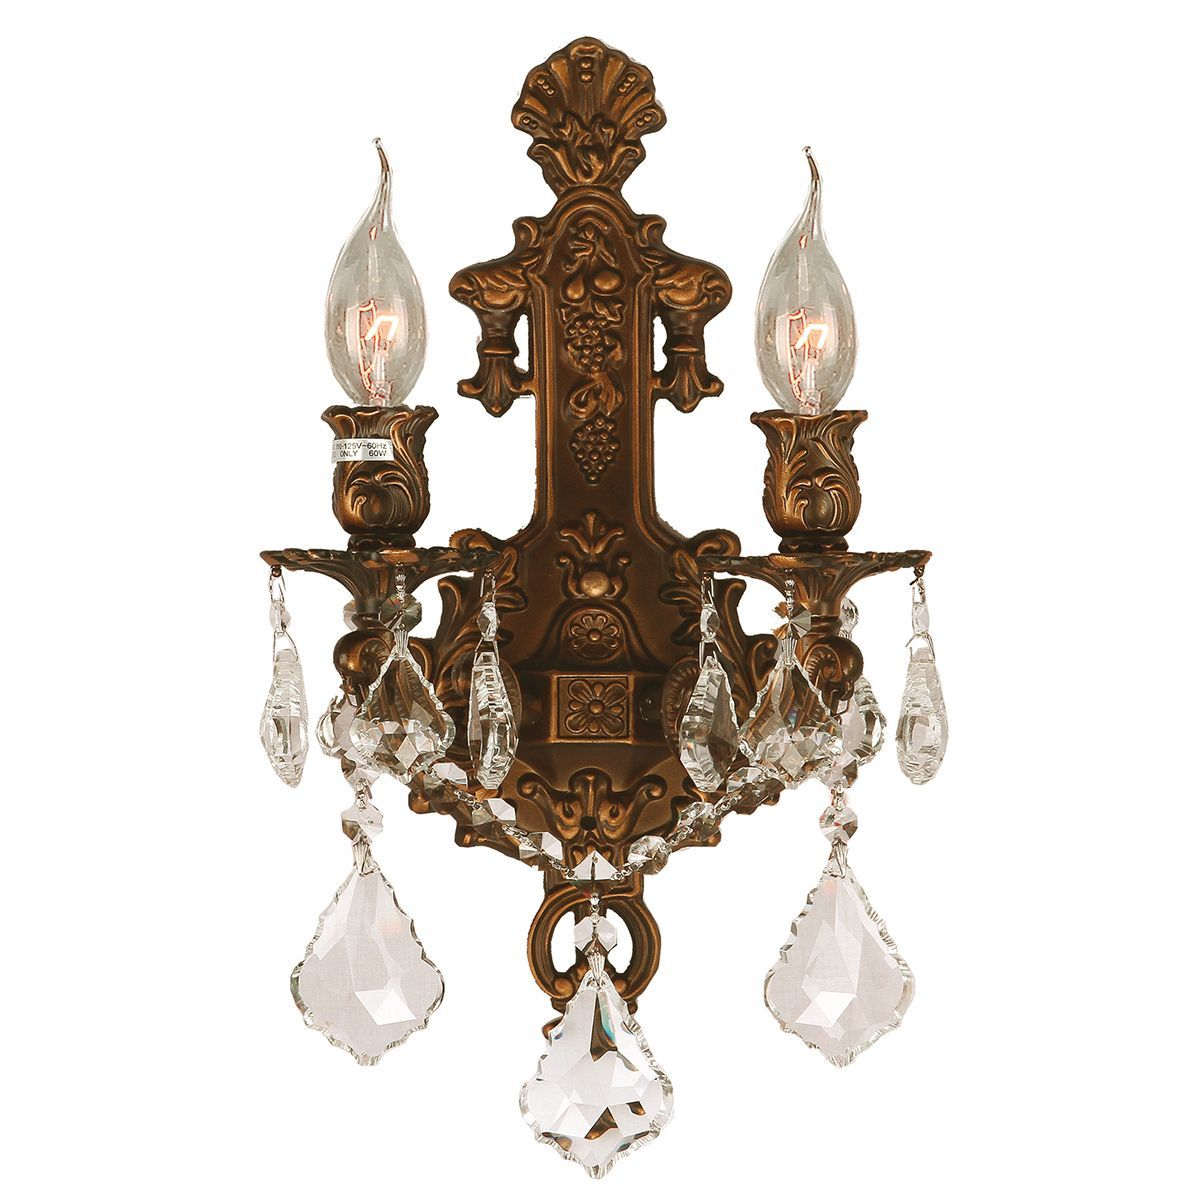 Traditional elegance 2 light french gold finish crystal candle traditional elegance 2 light french gold finish crystal candle wall sconce overstock shopping amipublicfo Gallery